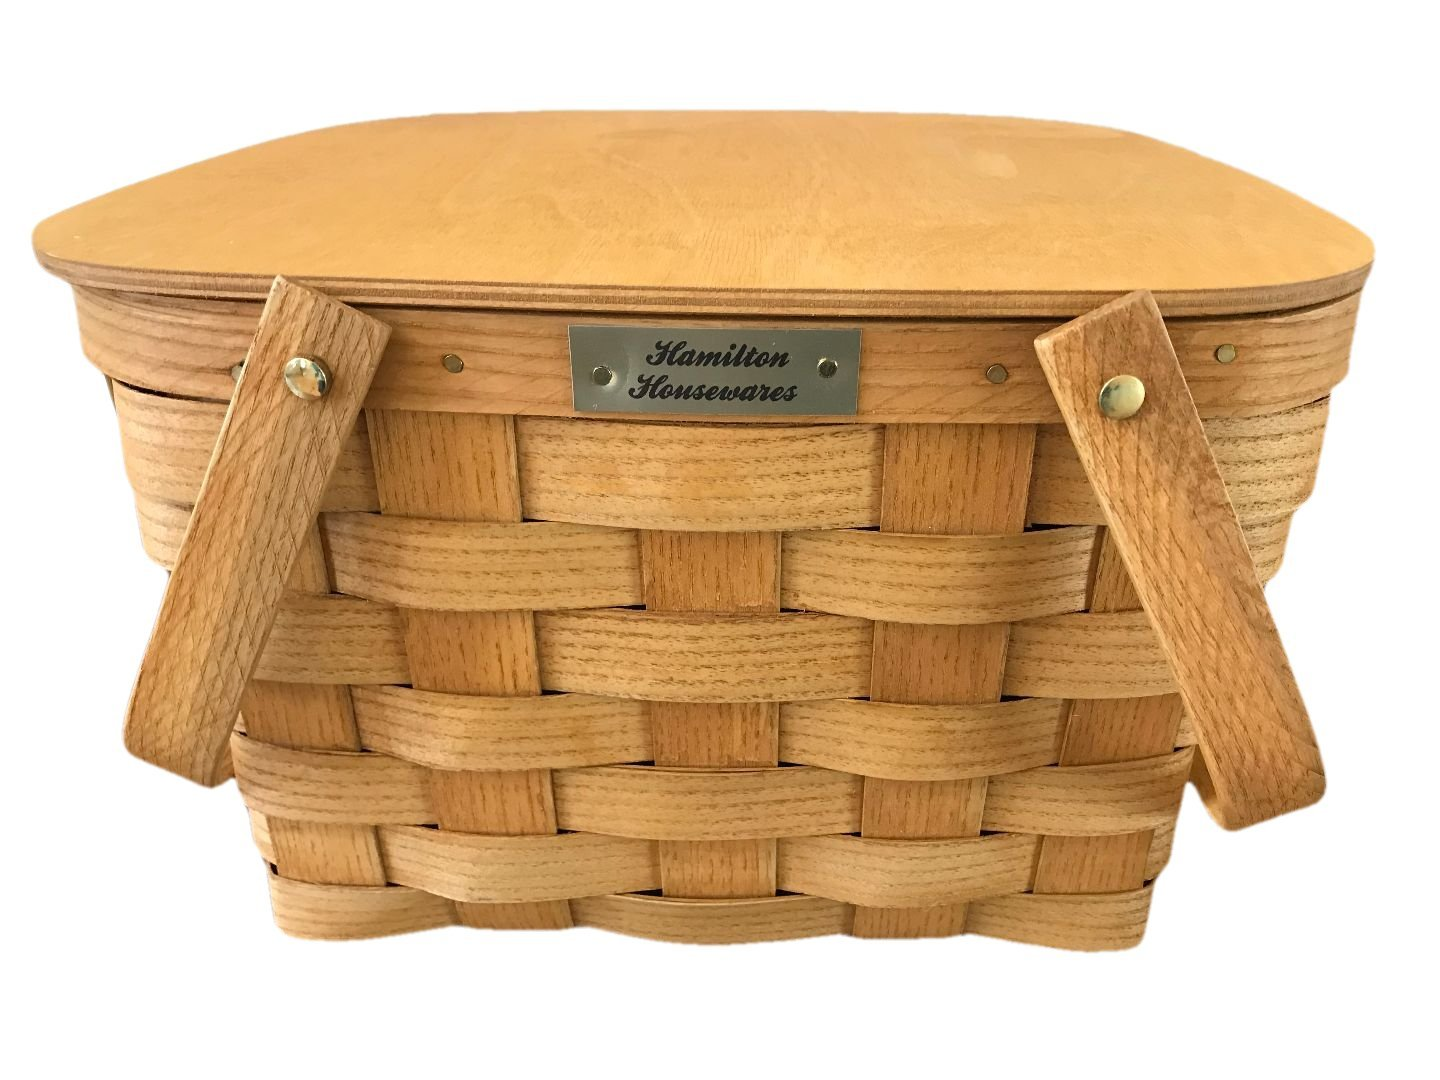 Hamilton Housewares Pie Carrier Basket - 2 Pie Basket with Lid and Tray - Made in USA